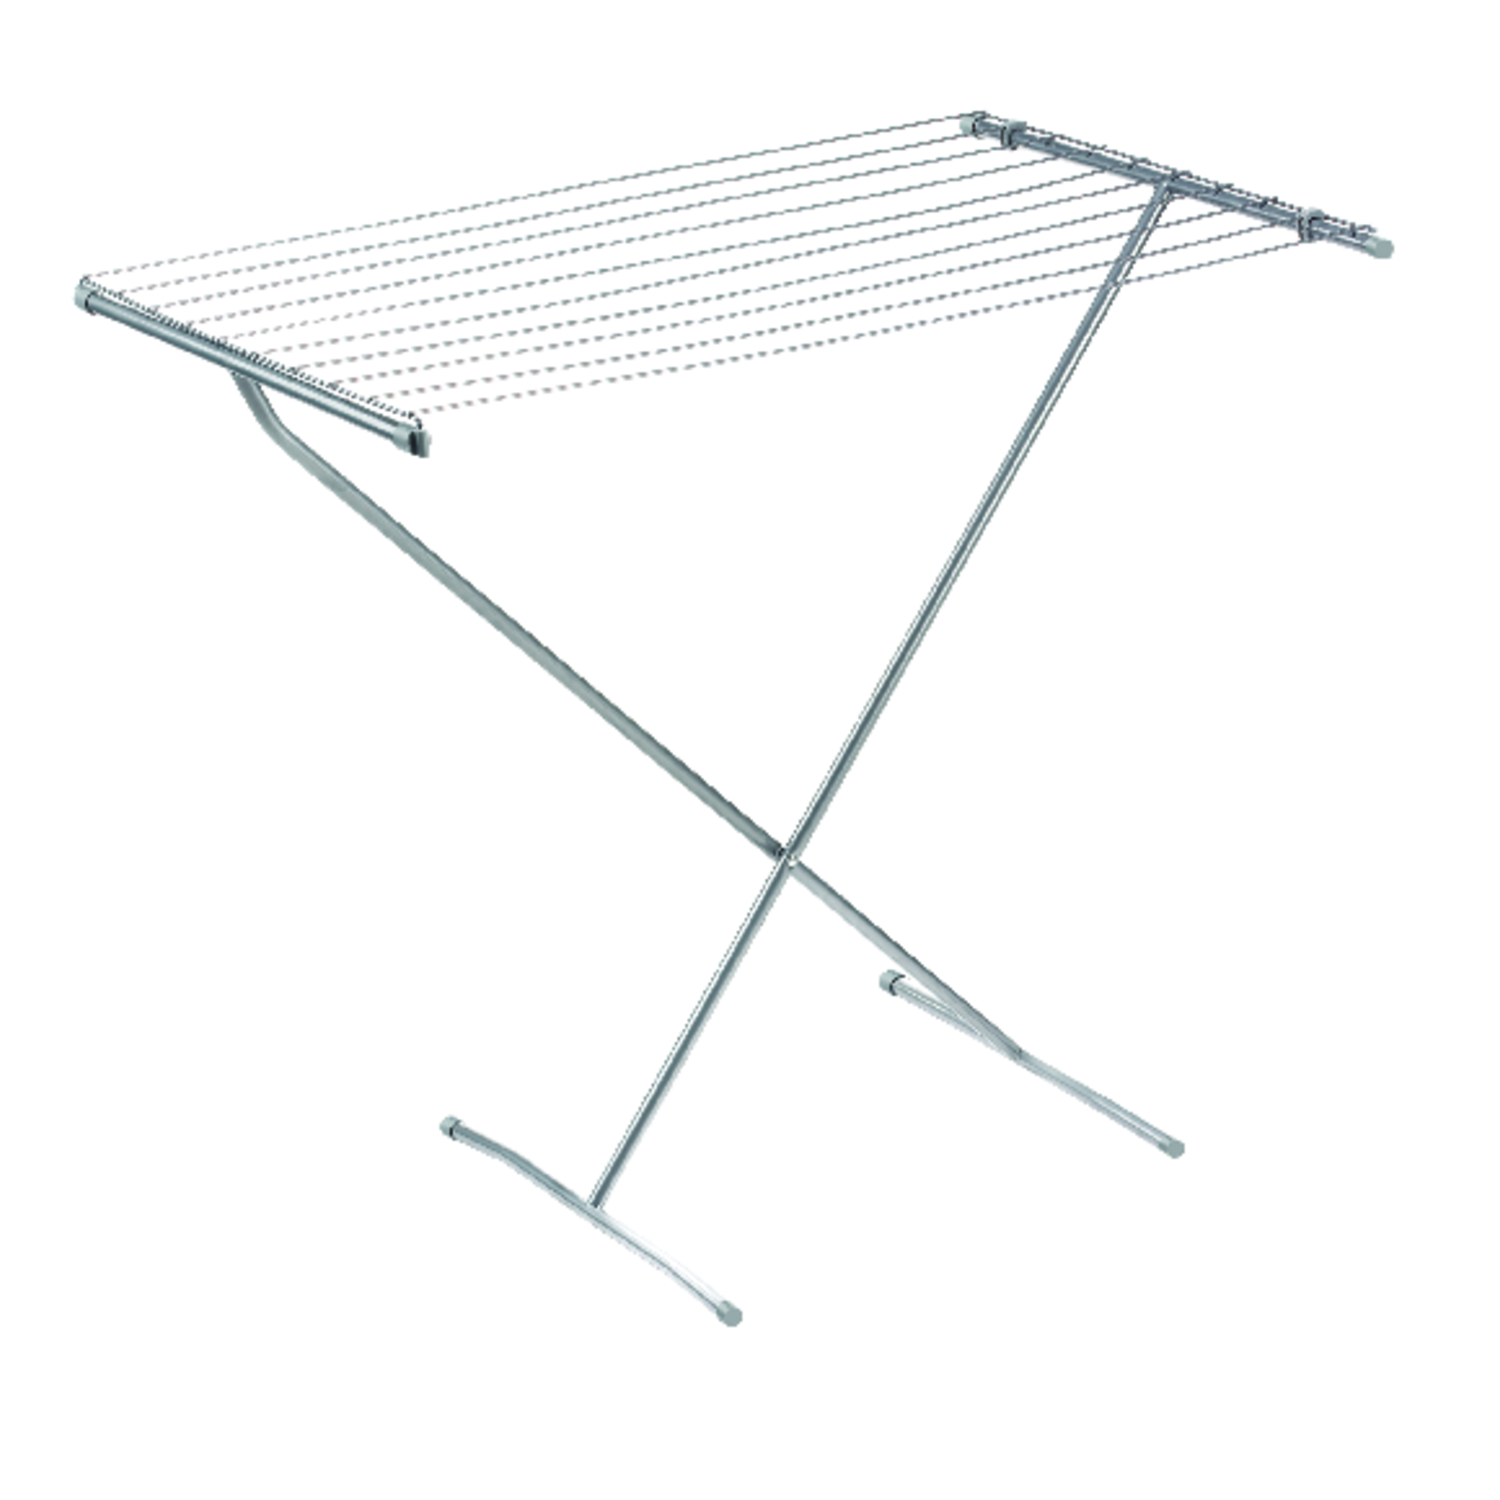 Polder  32 in. W x 32 in. H x 23 in. D Clothes Drying Rack  Steel